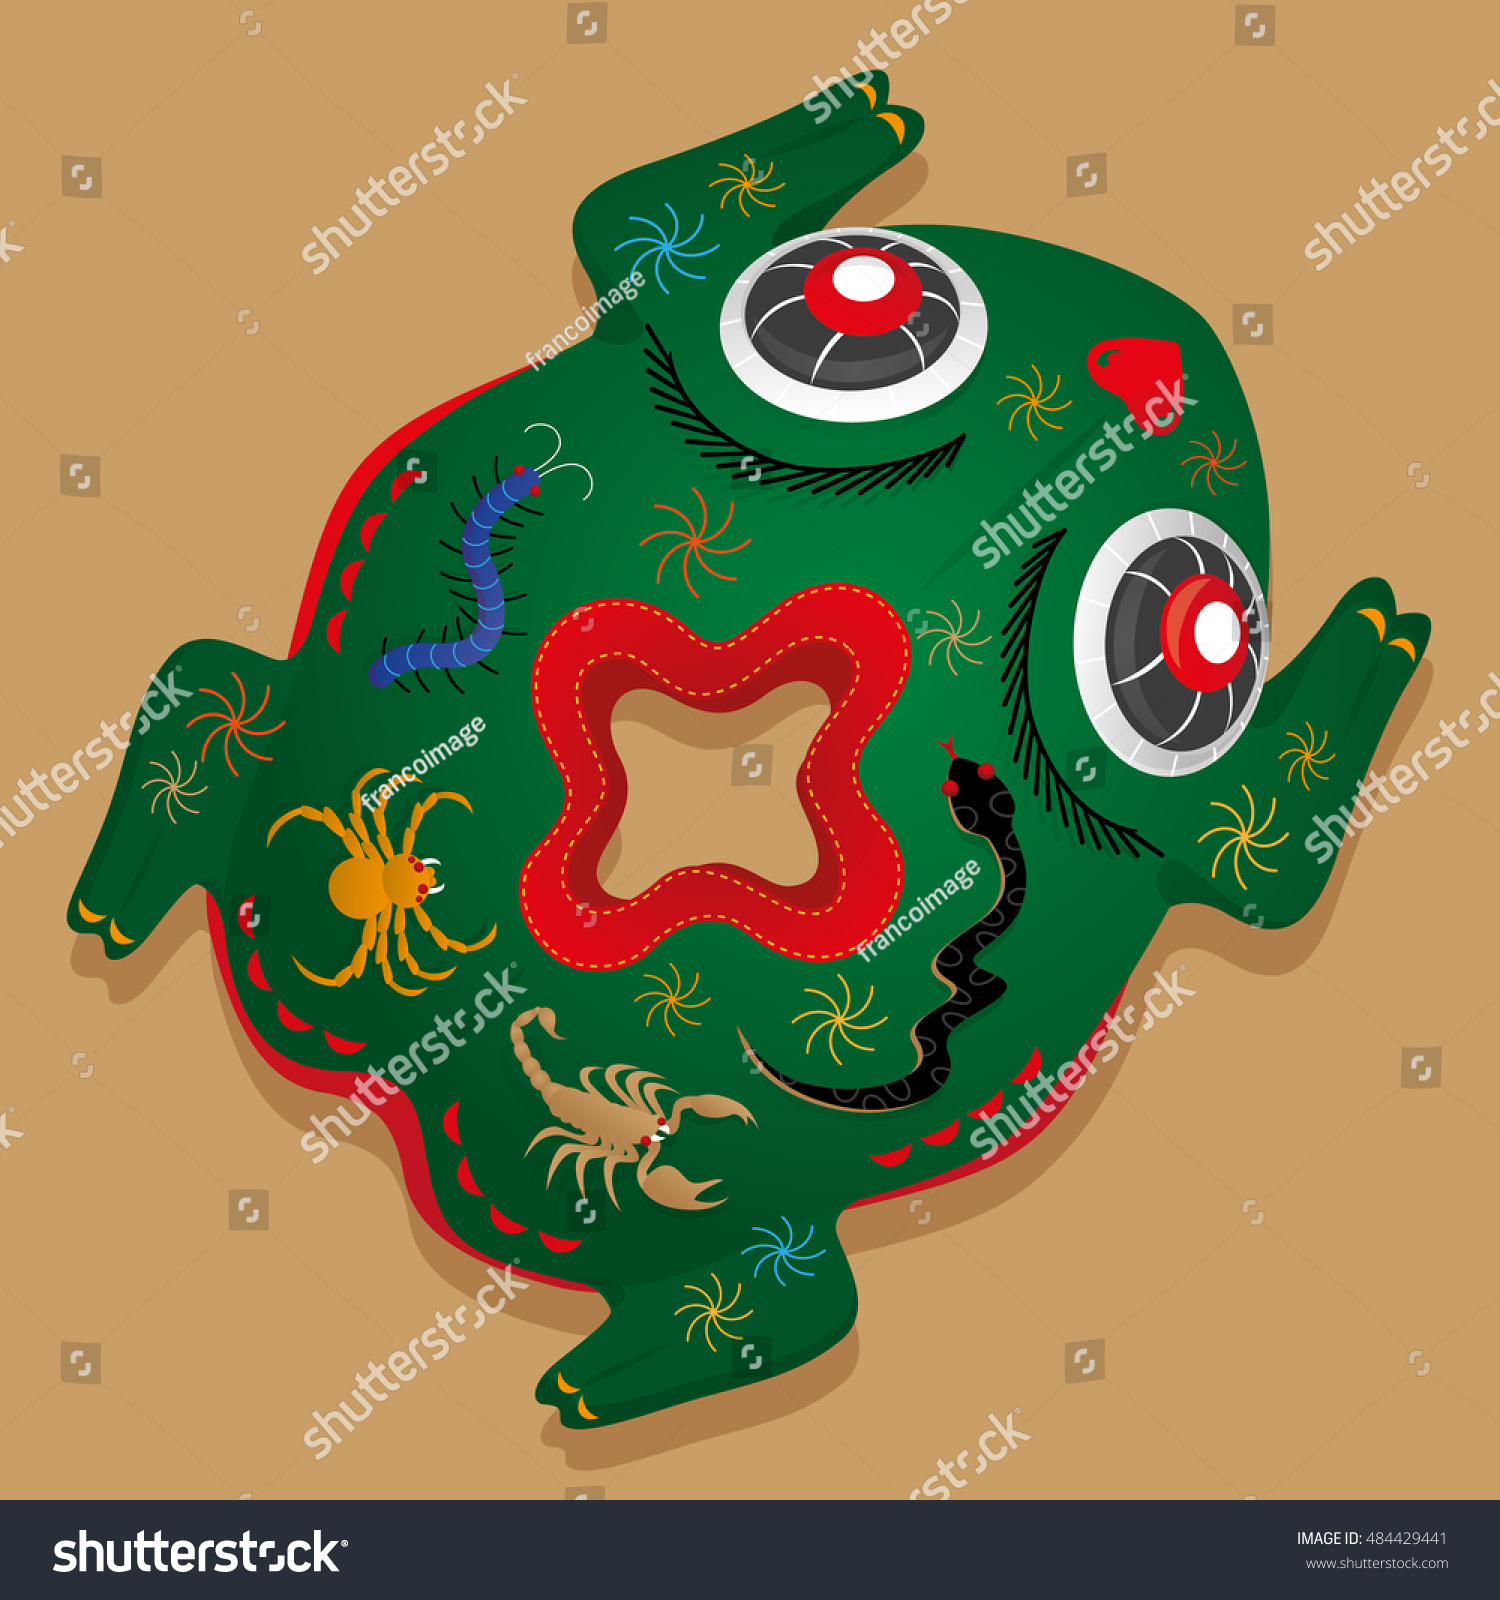 Chinese five poison toadshaped pillow chinese stock vector chinese five poison toad shaped pillow in chinese symbol of five poison reptiles biocorpaavc Gallery